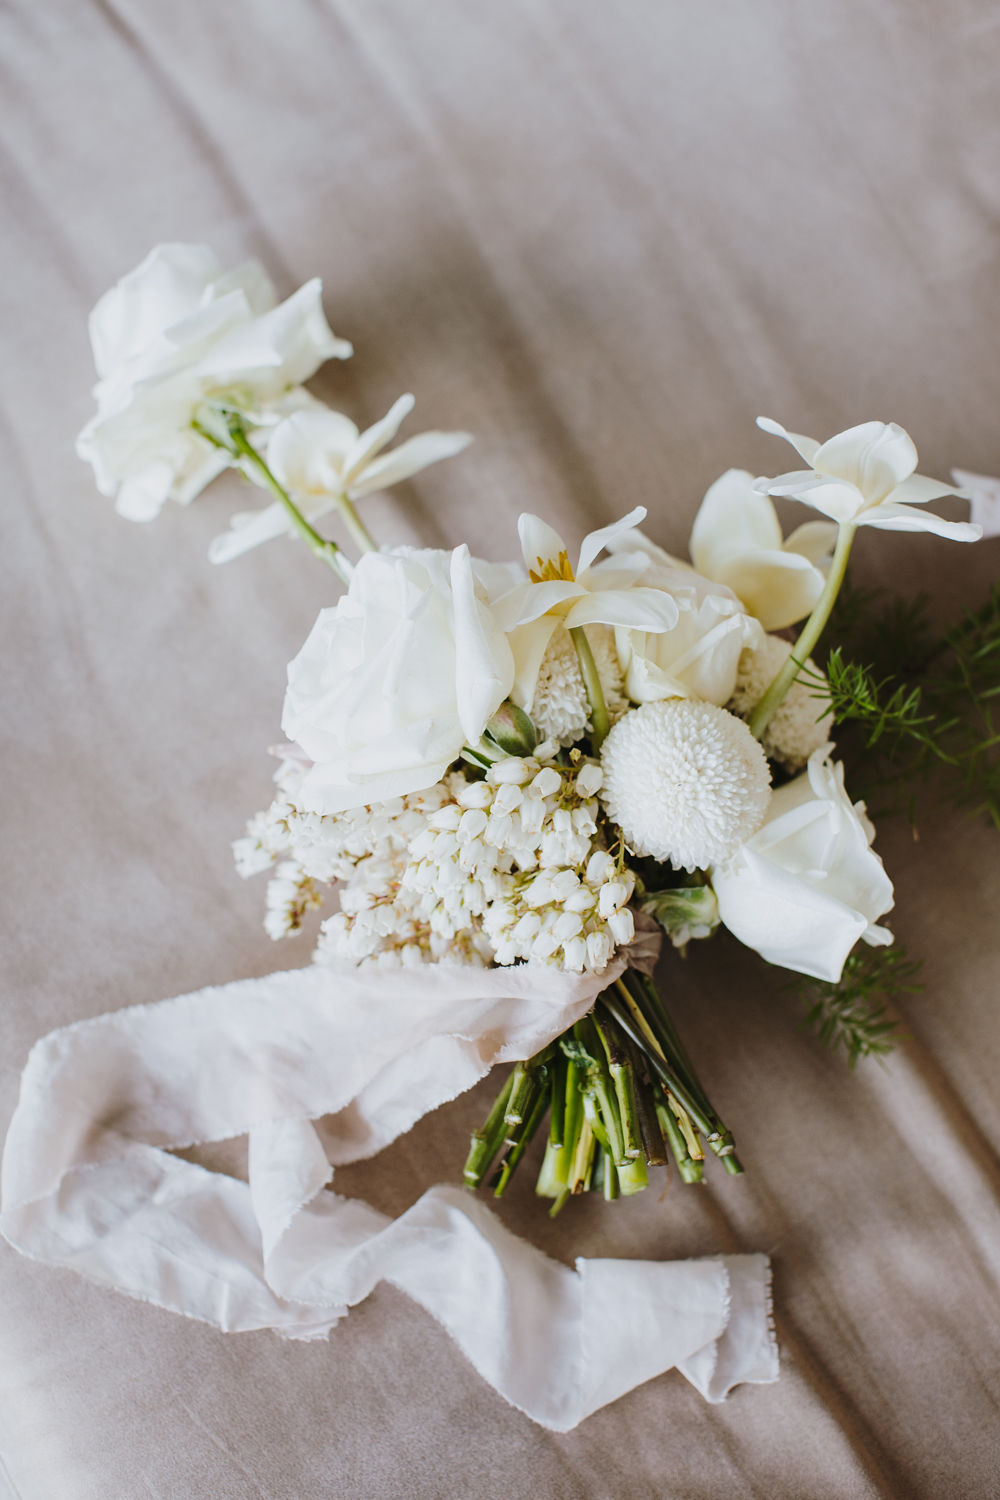 Bloodwood Botanica | Resting white and green bridal bouquet